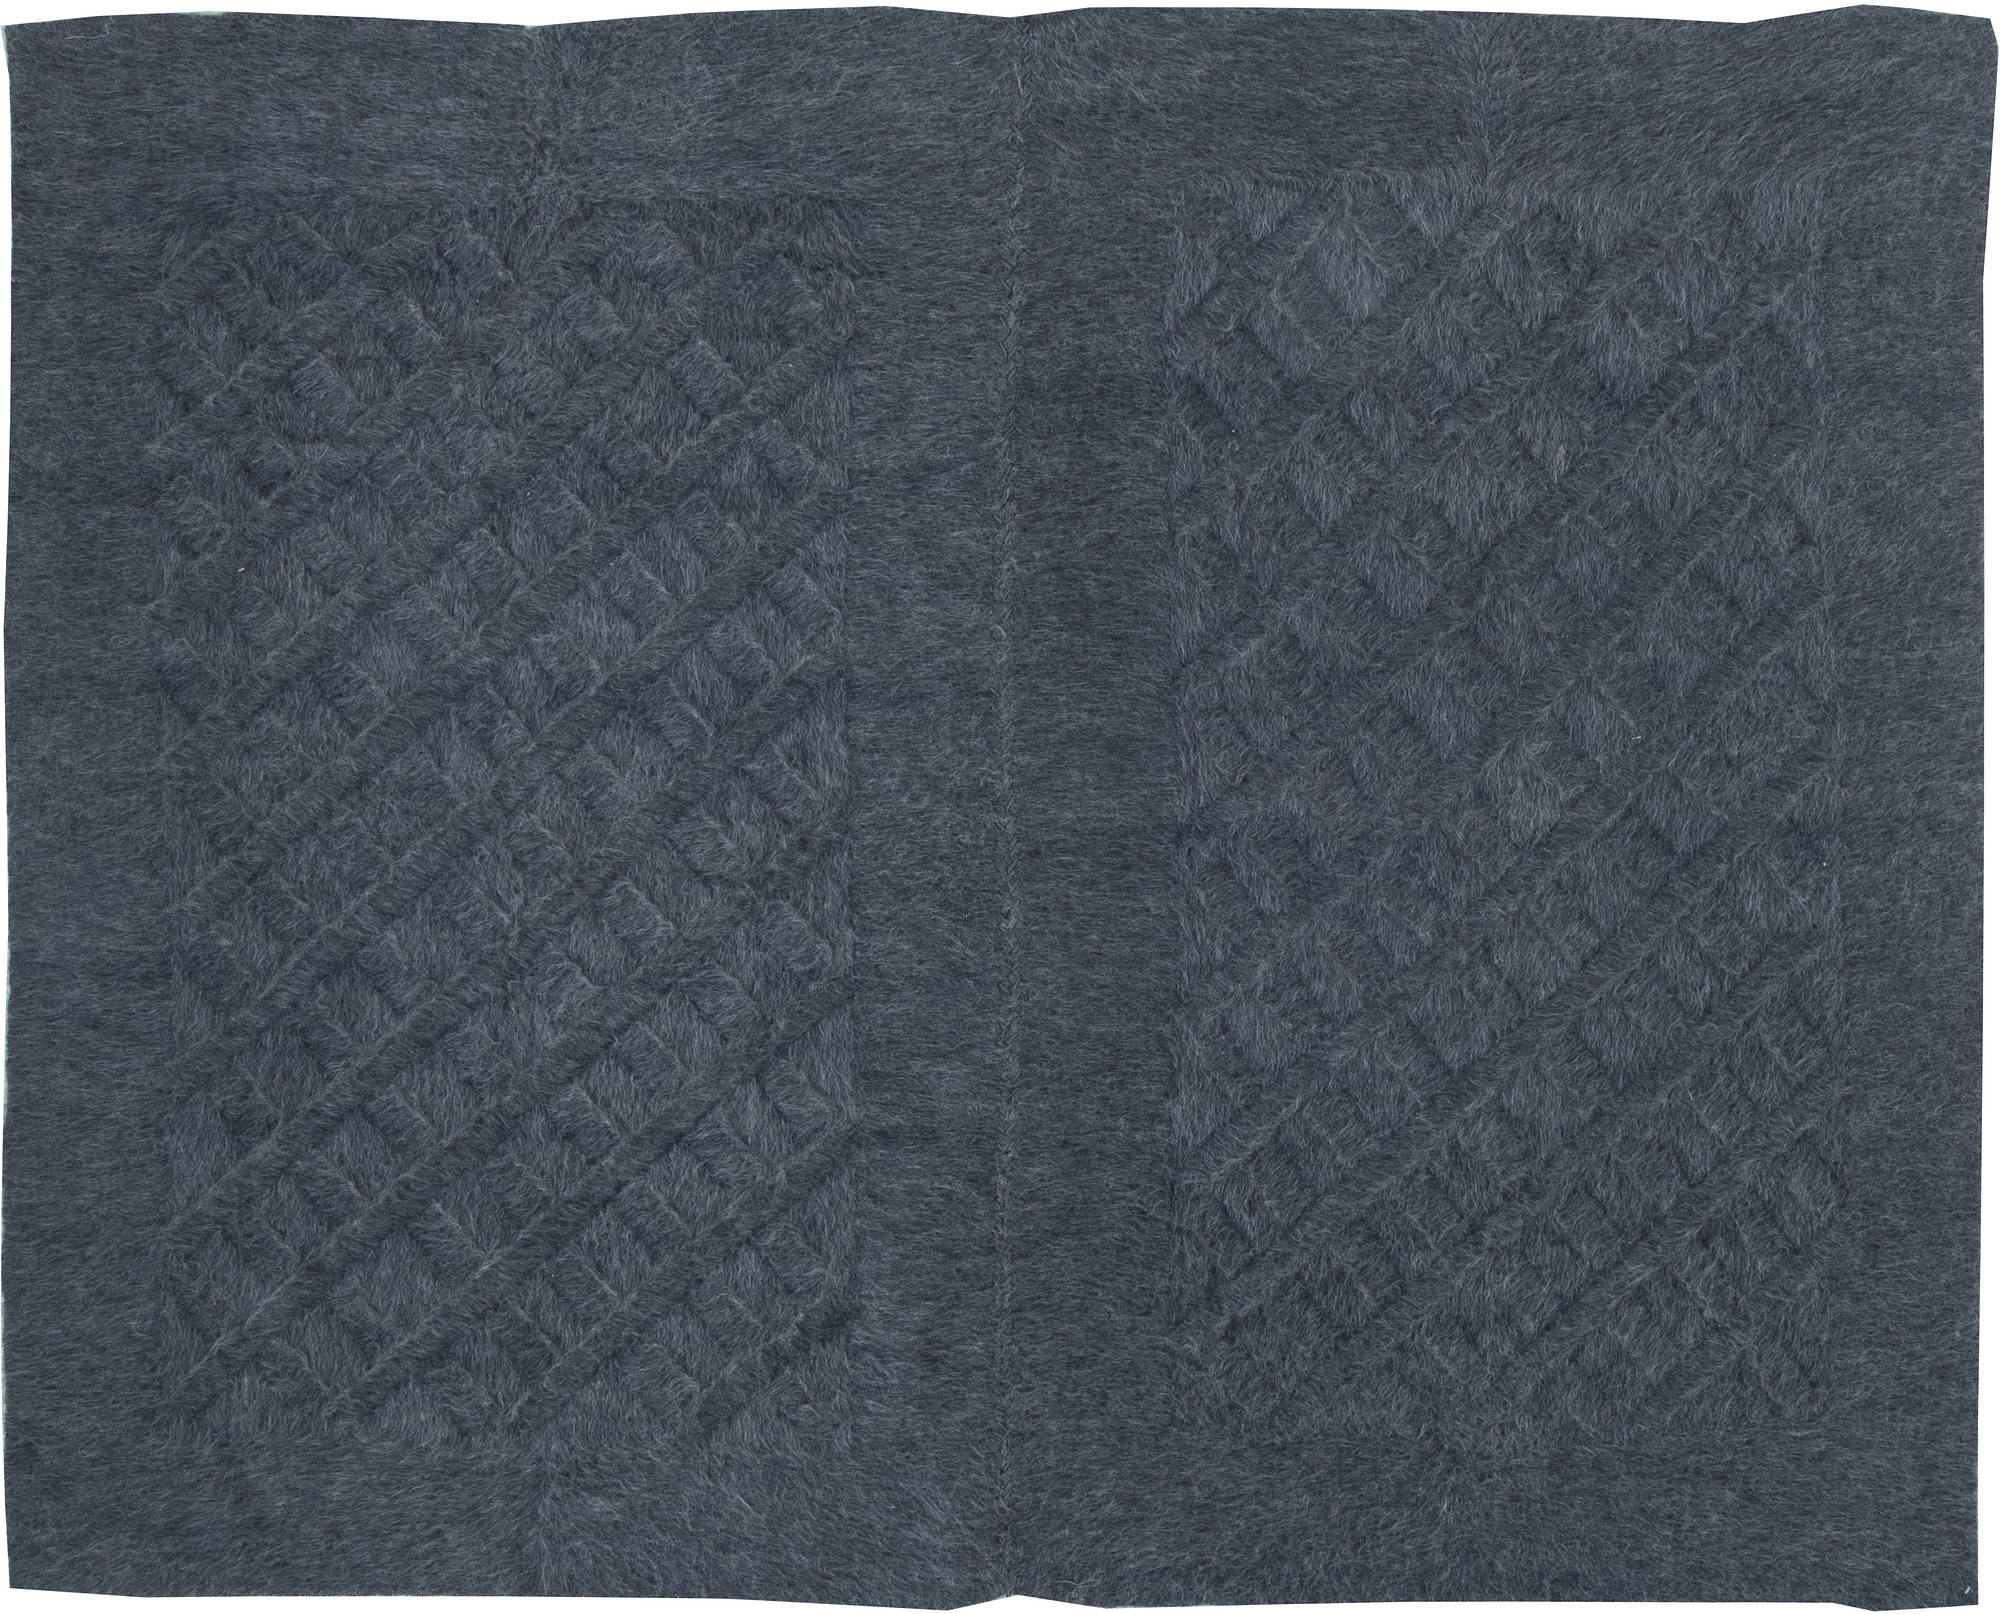 Contemporary Anthracite Geometric Rug N11518